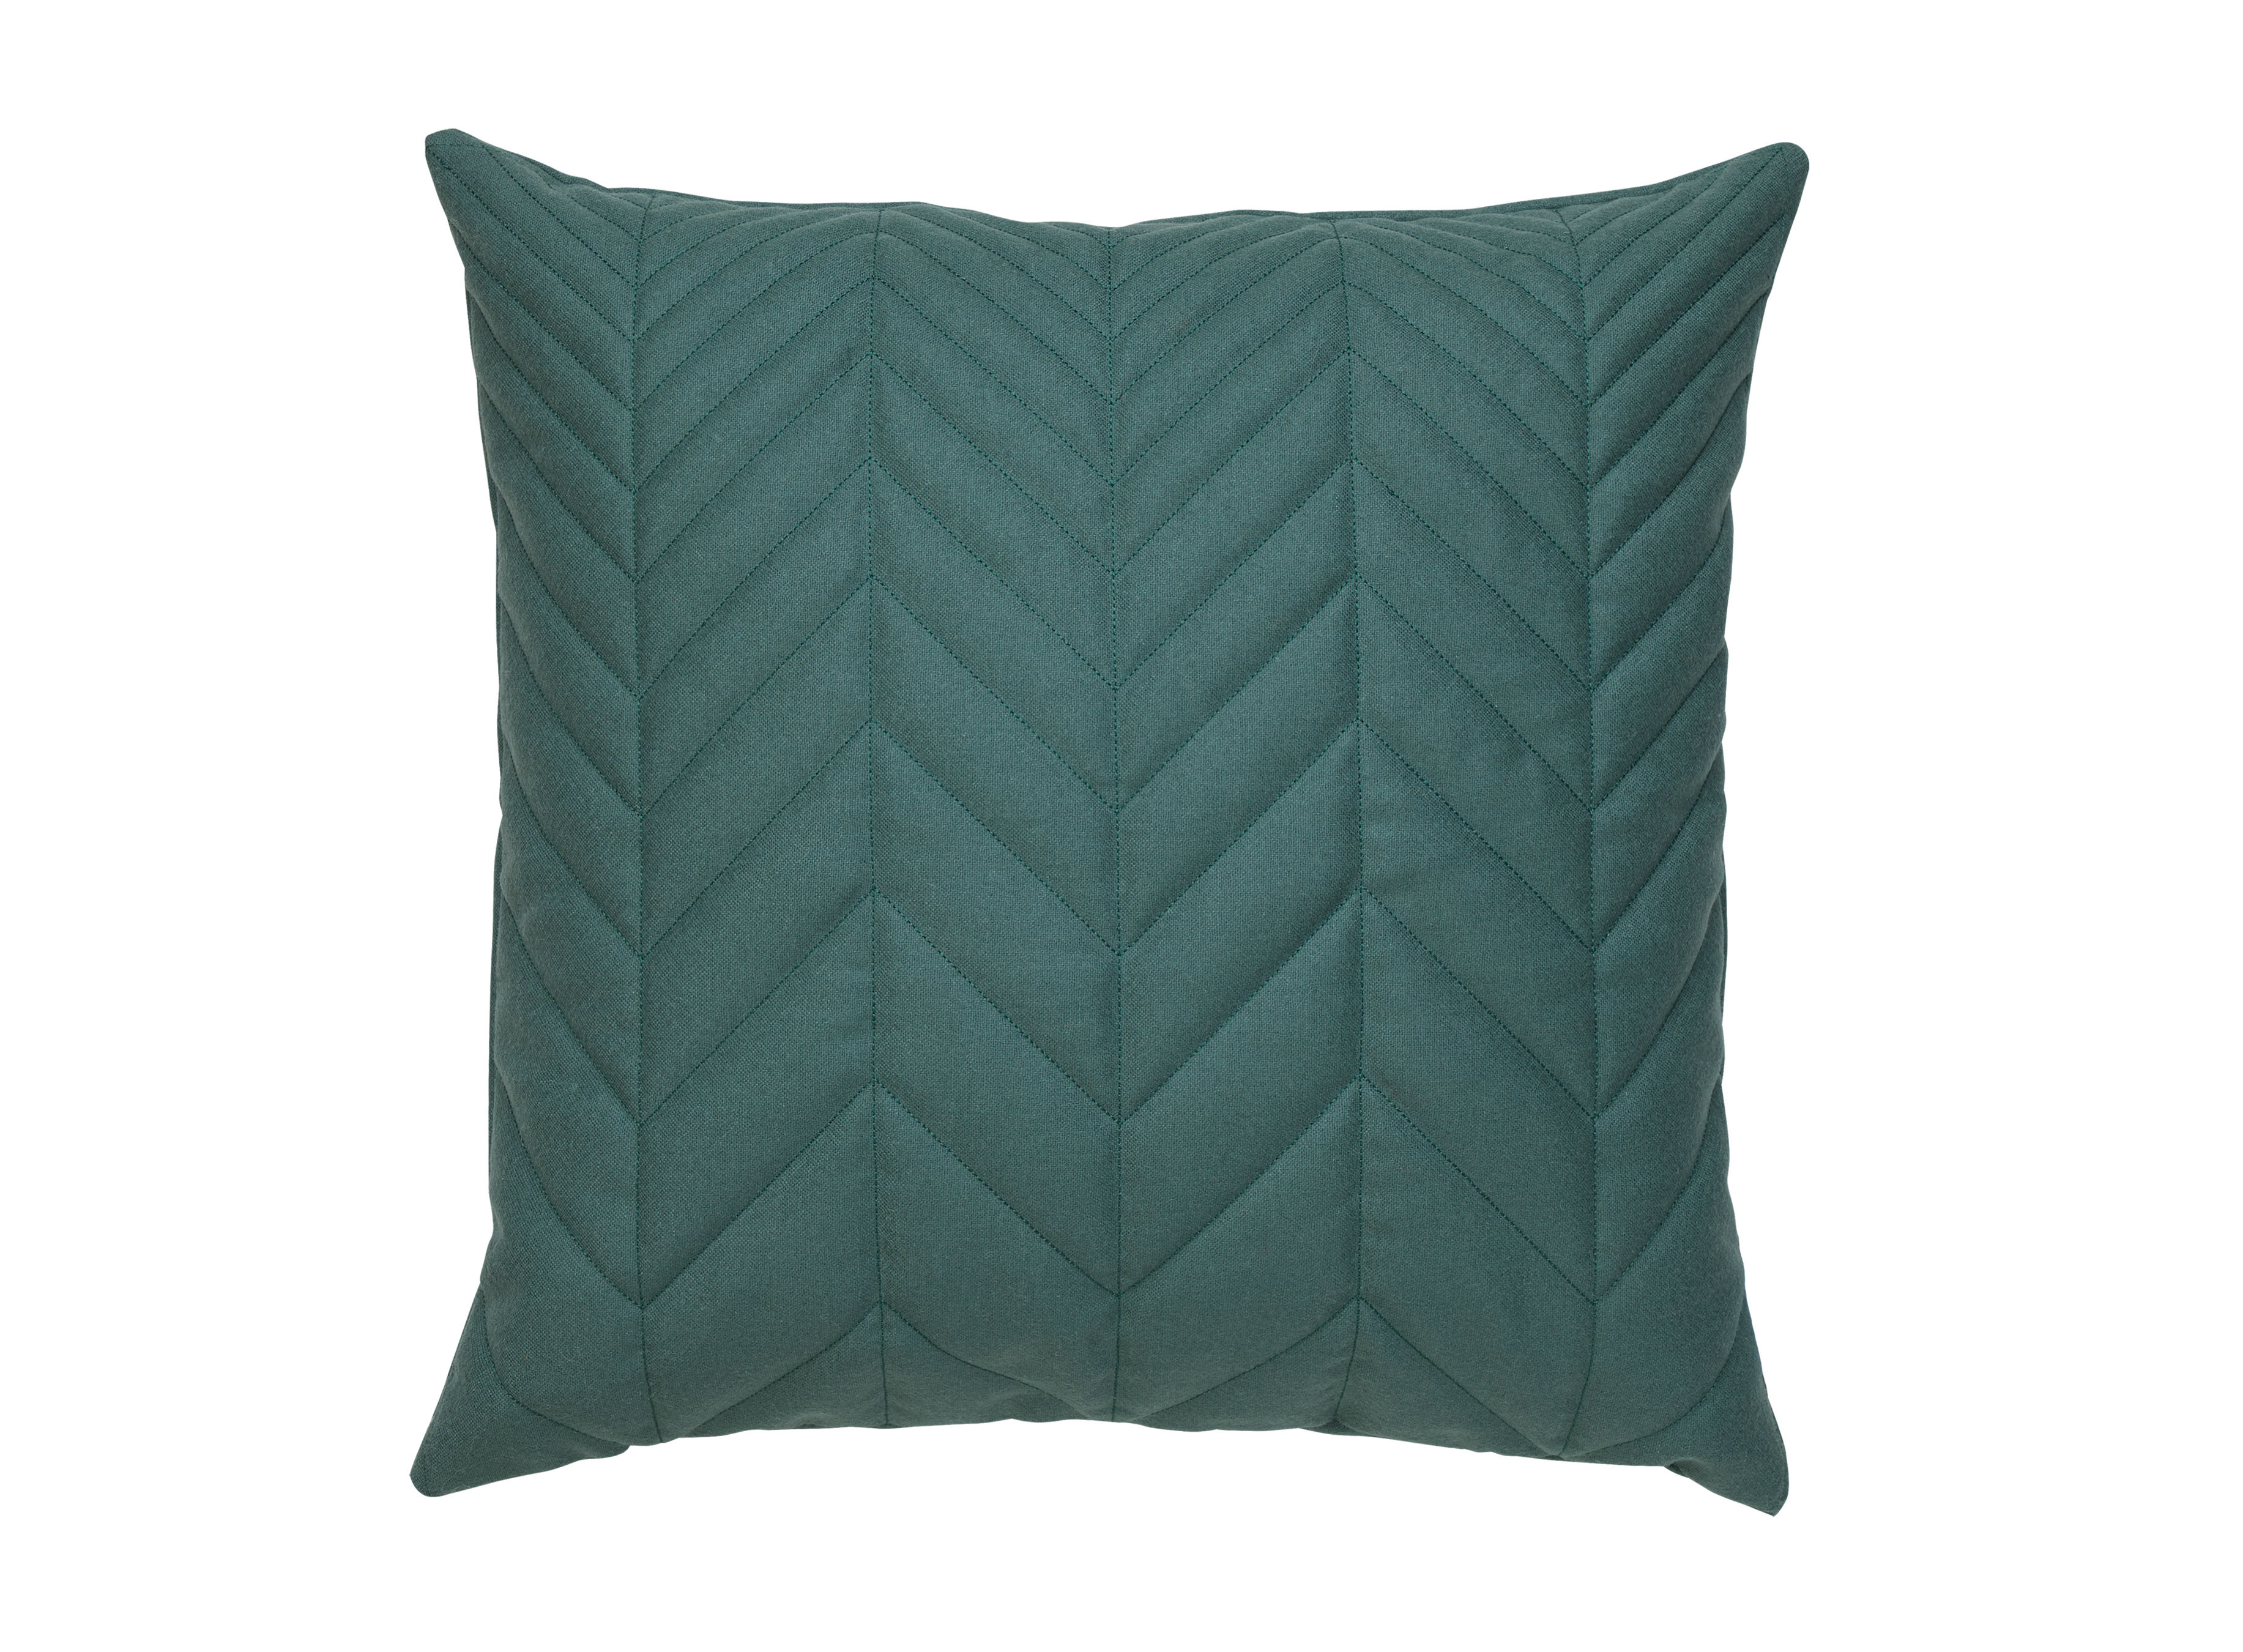 Decoration - Cushions & Poufs - Case Cushion - / 50 x 50cm by Northern  - Green -  Plumes, Wool